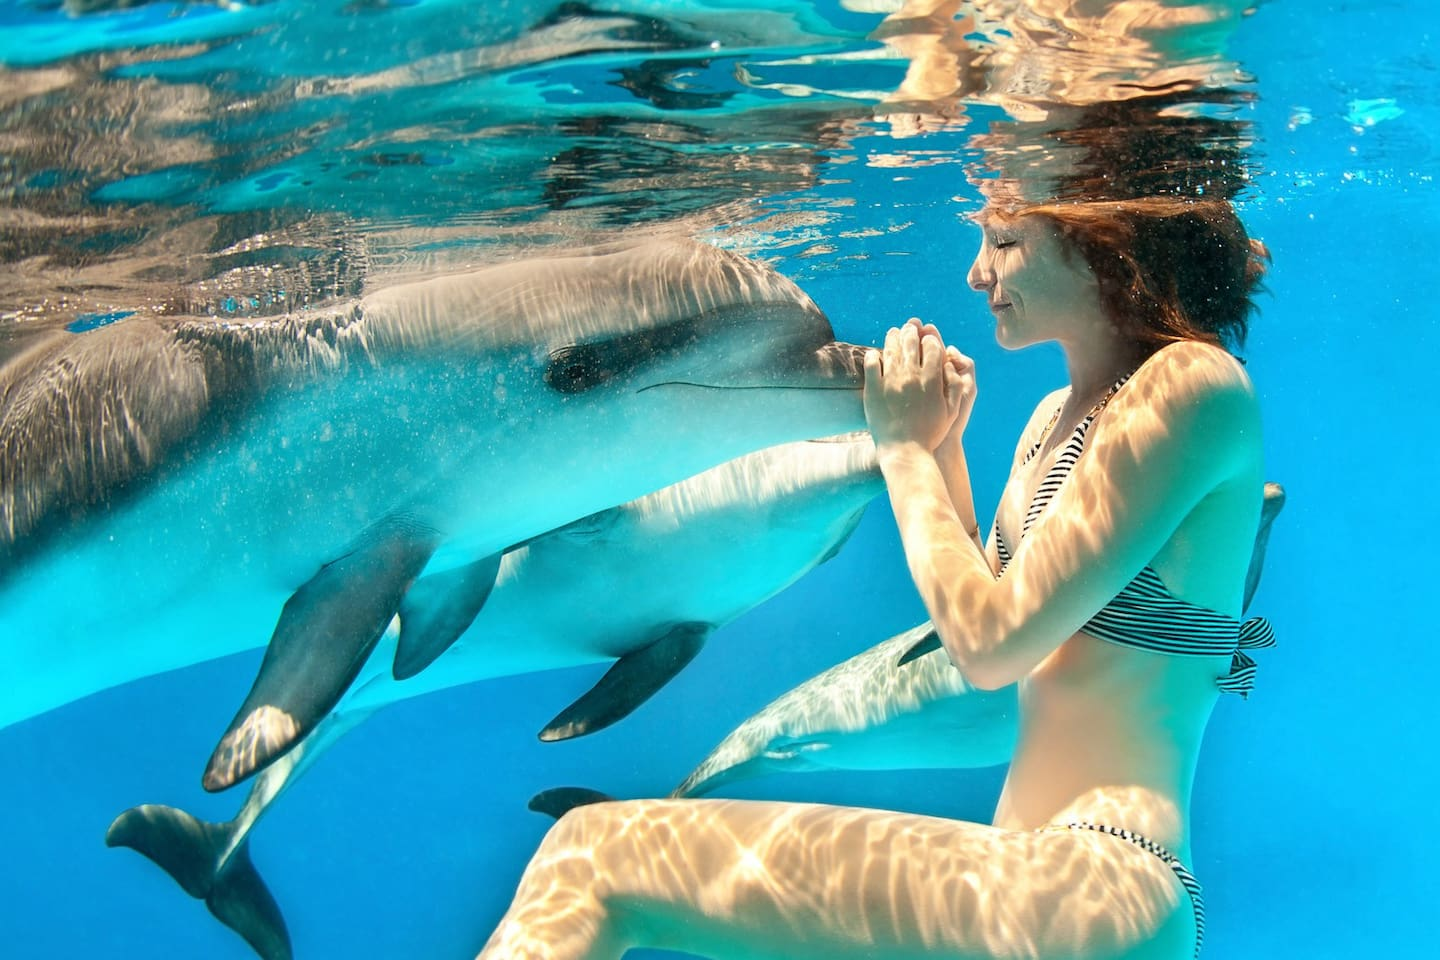 YES!  You can swin with the dolphins in local dolphin parks.